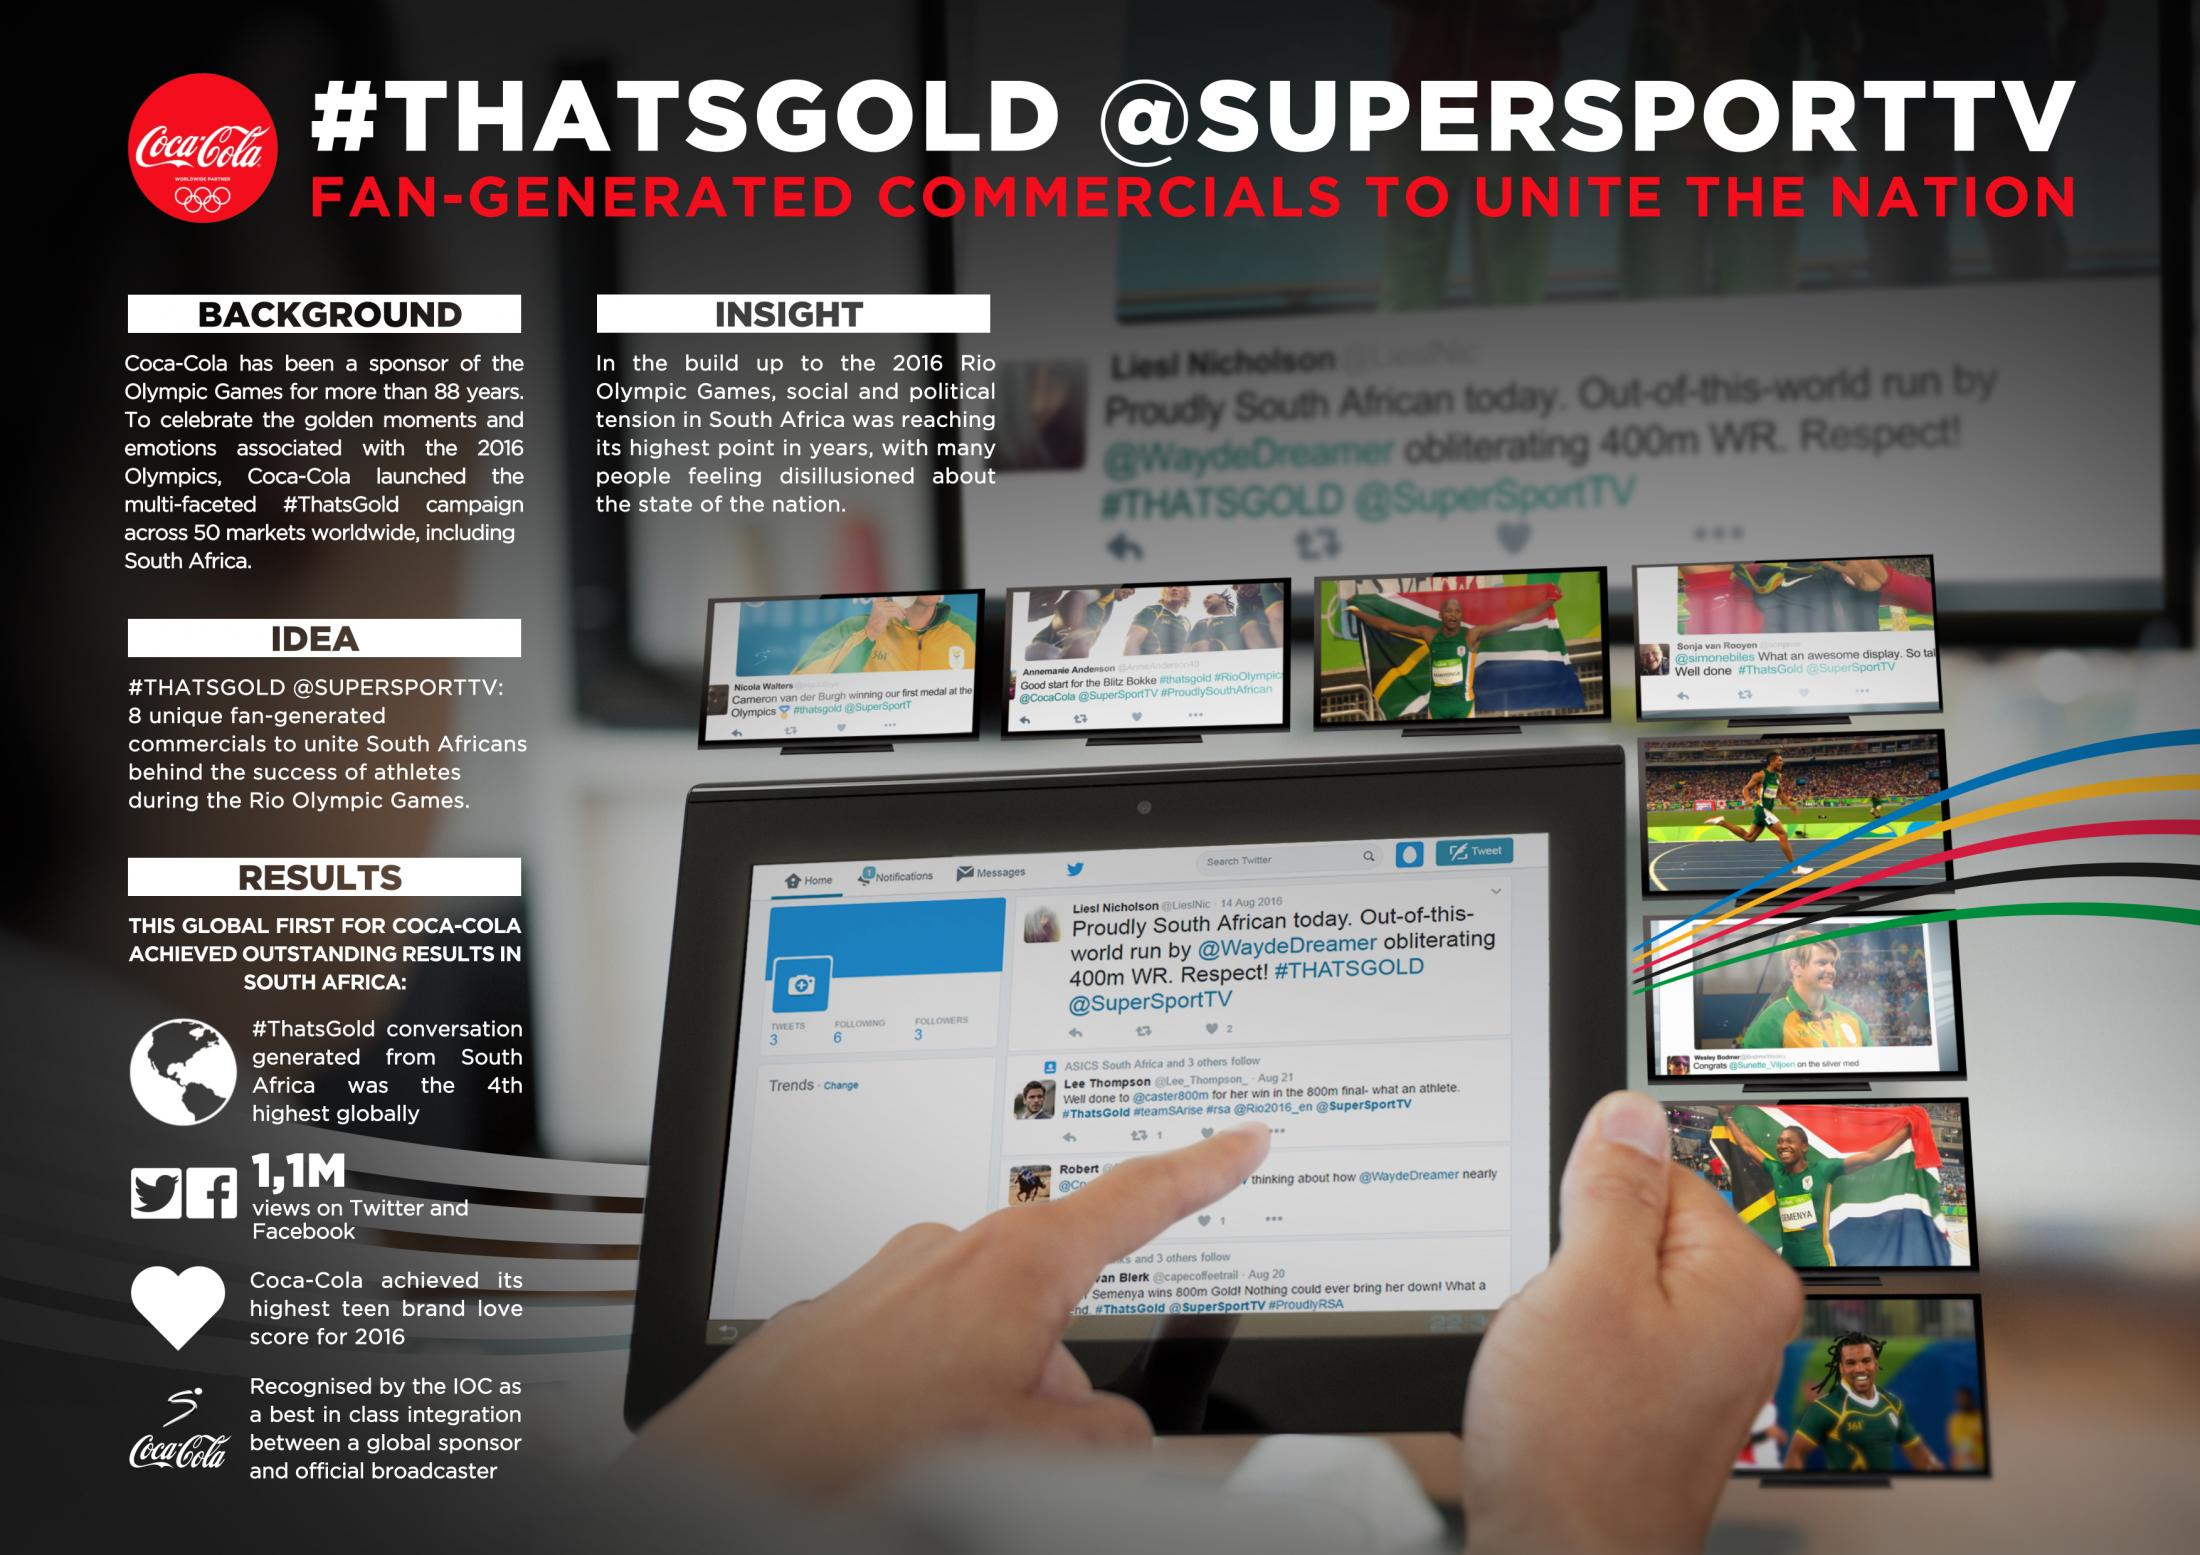 Thumbnail for #ThatsGold @SuperSportTV